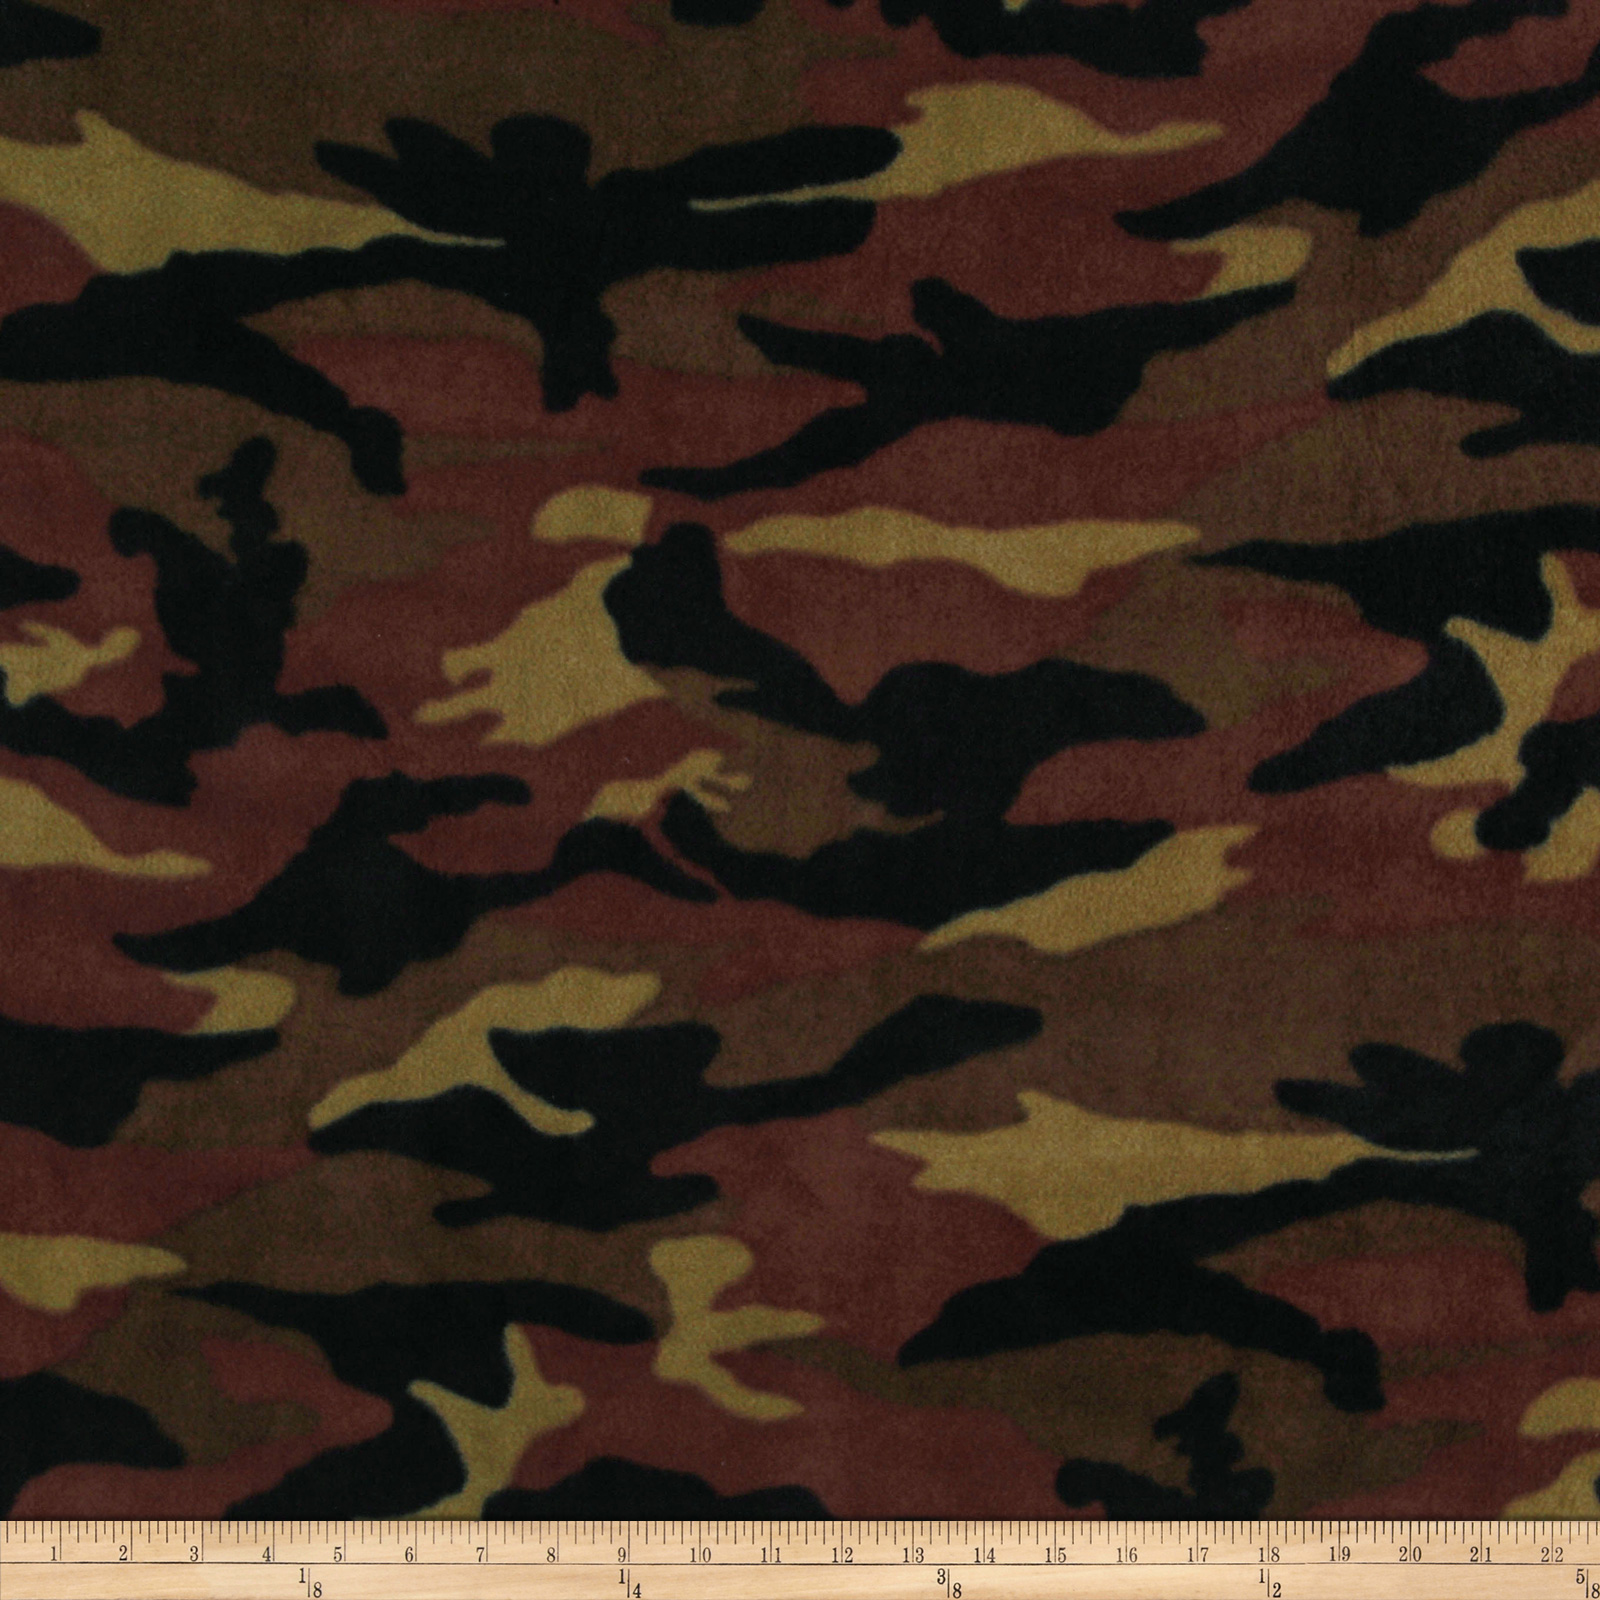 WinterFleece Woodland Camo Green Fabric